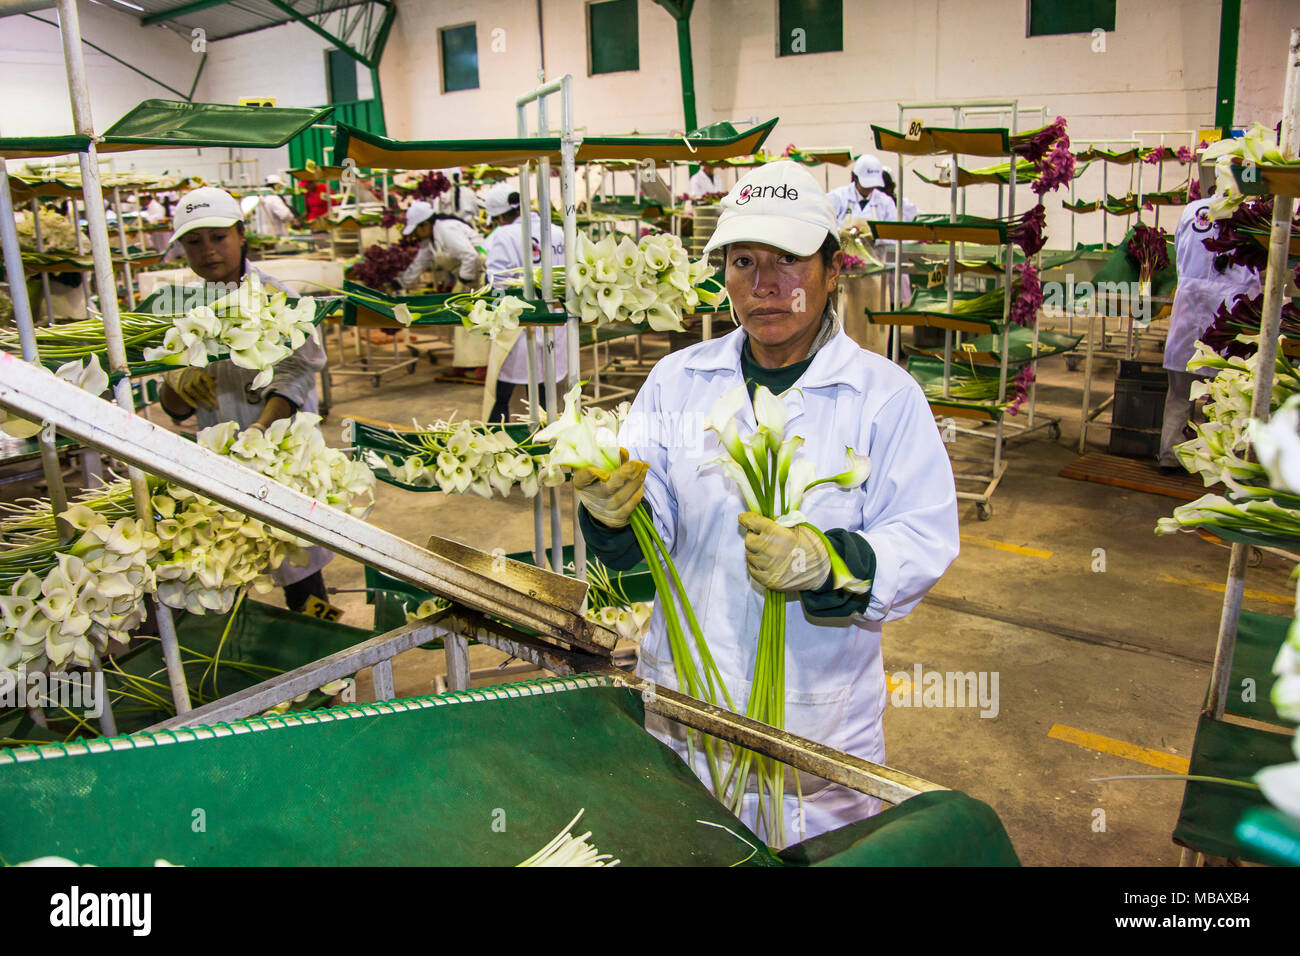 Packing flowers stock photos packing flowers stock images alamy guayllabamba ecuador 15 may 2016 women unidentified in an industrial plant sorting izmirmasajfo Image collections